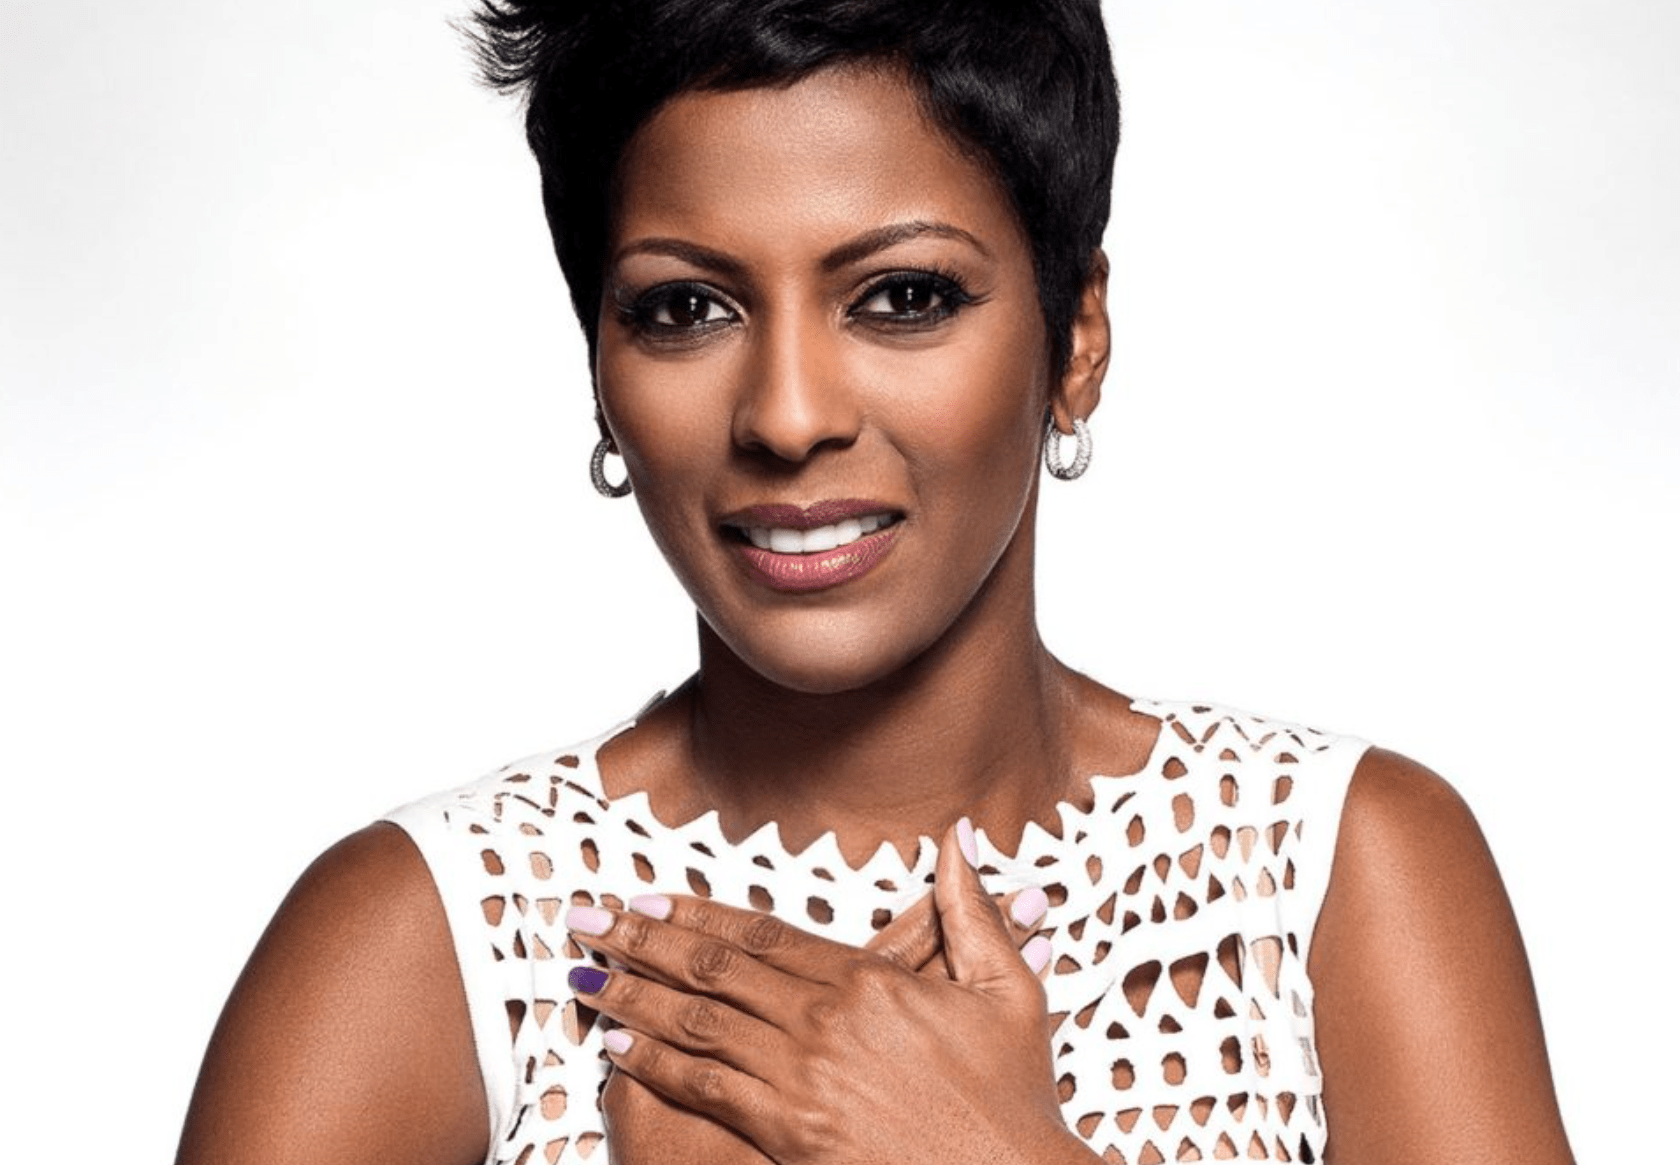 Tamron Hall Admitted On Her Talk Show She Used To 'facilitate' Selling Cocaine